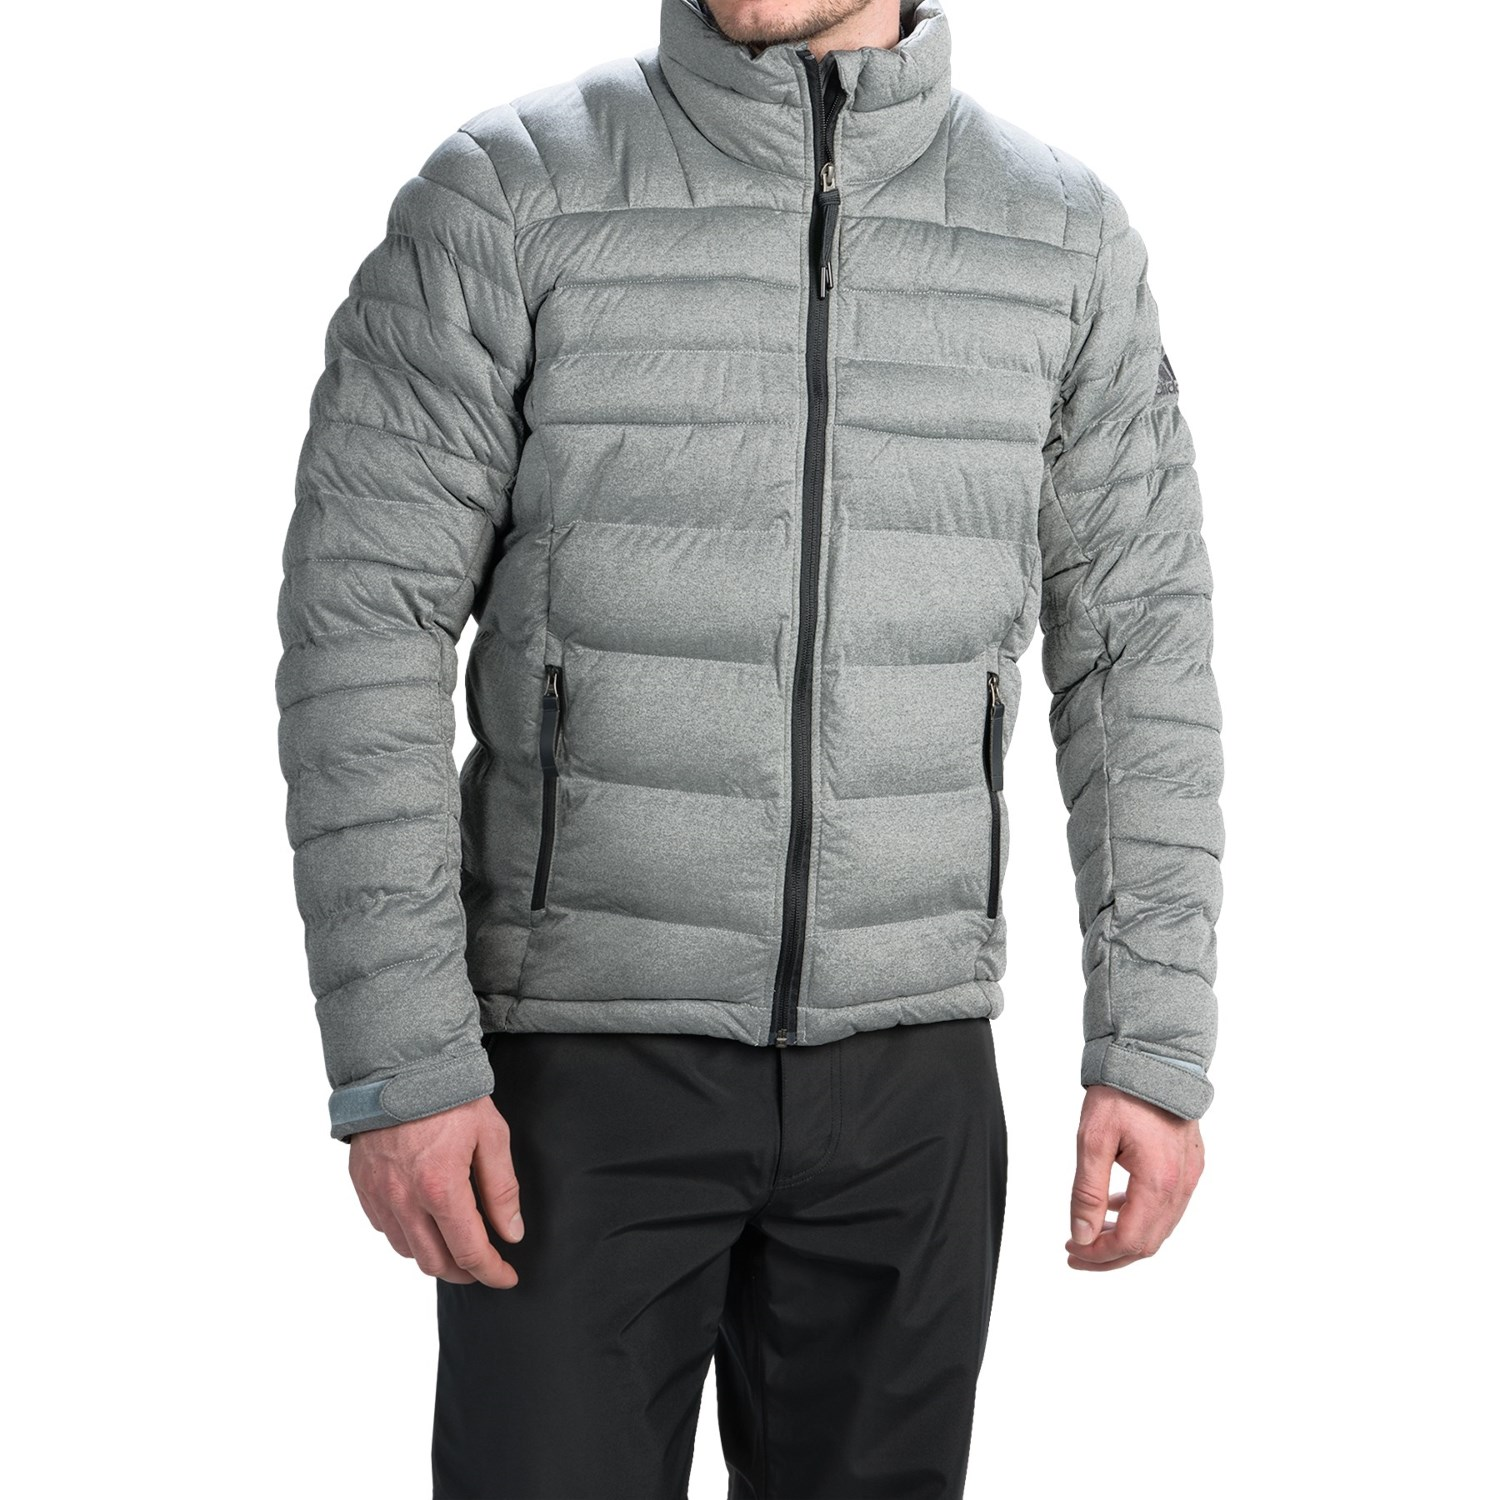 afb985ceb03e4 adidas -outdoor-hiking-comfort-2-jacket-insulated-for-men-in-tech-grey~p~135wm 01~1500.2.jpg